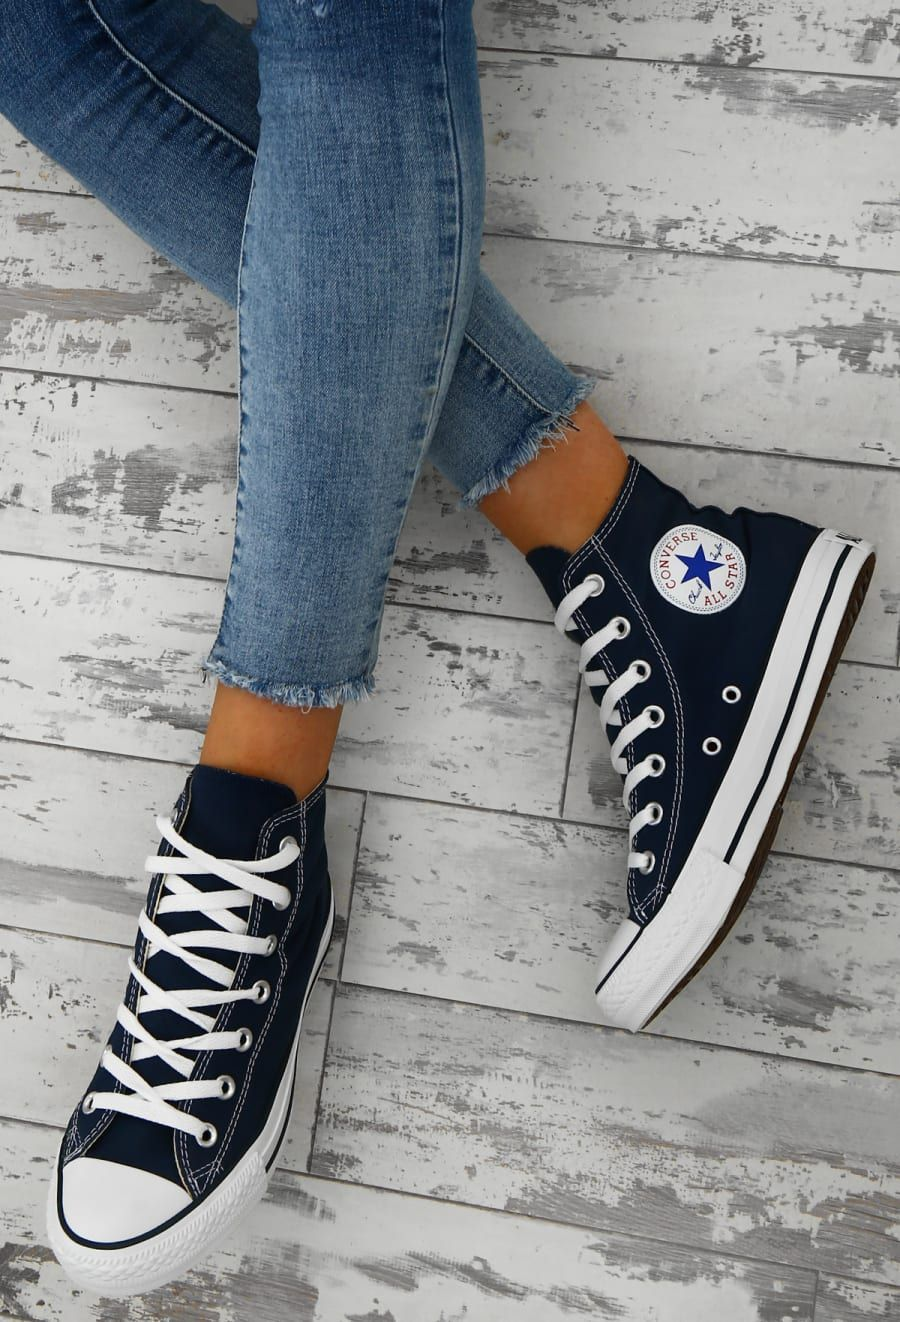 new concept 084f2 d77a4 Chuck Taylor Converse All Star Navy High Top Trainers